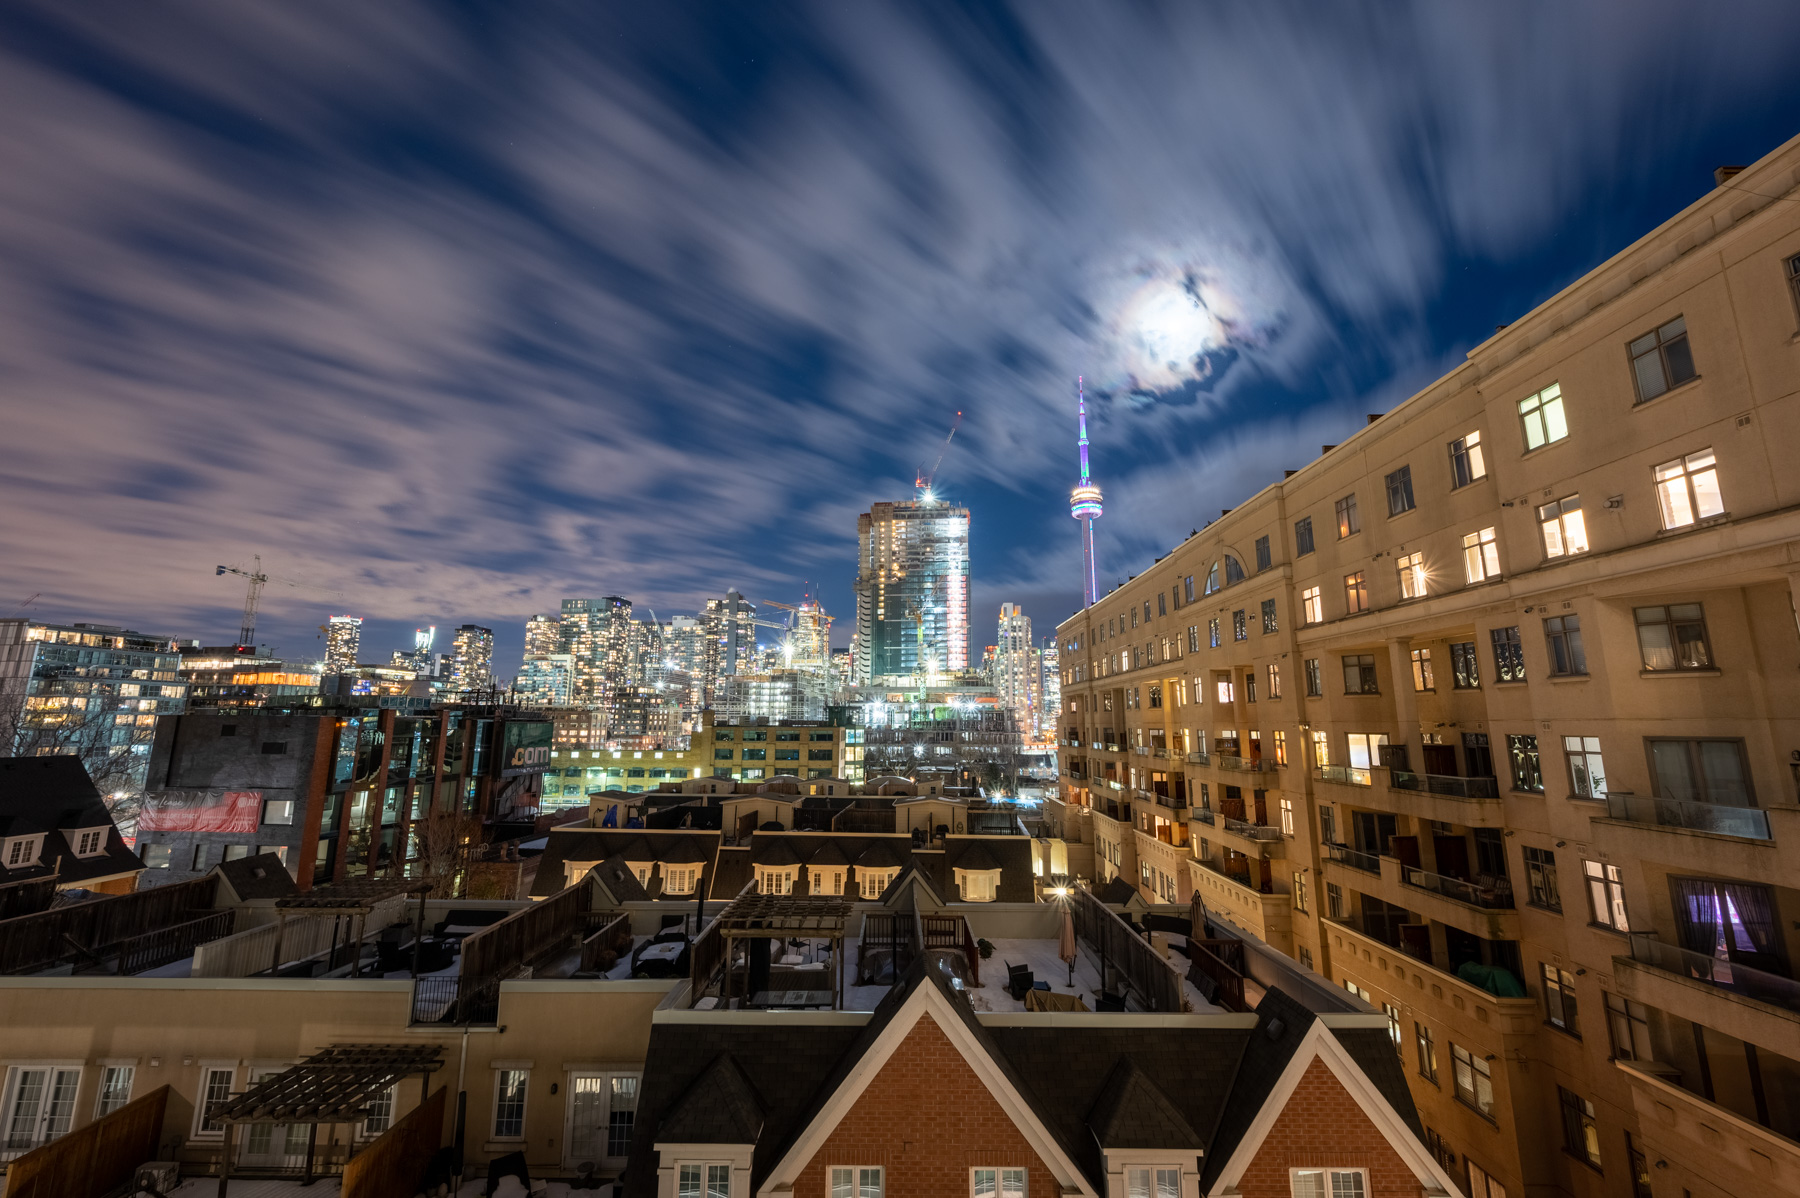 City lights, moonlit skies and blue lights of CN Tower in distance.